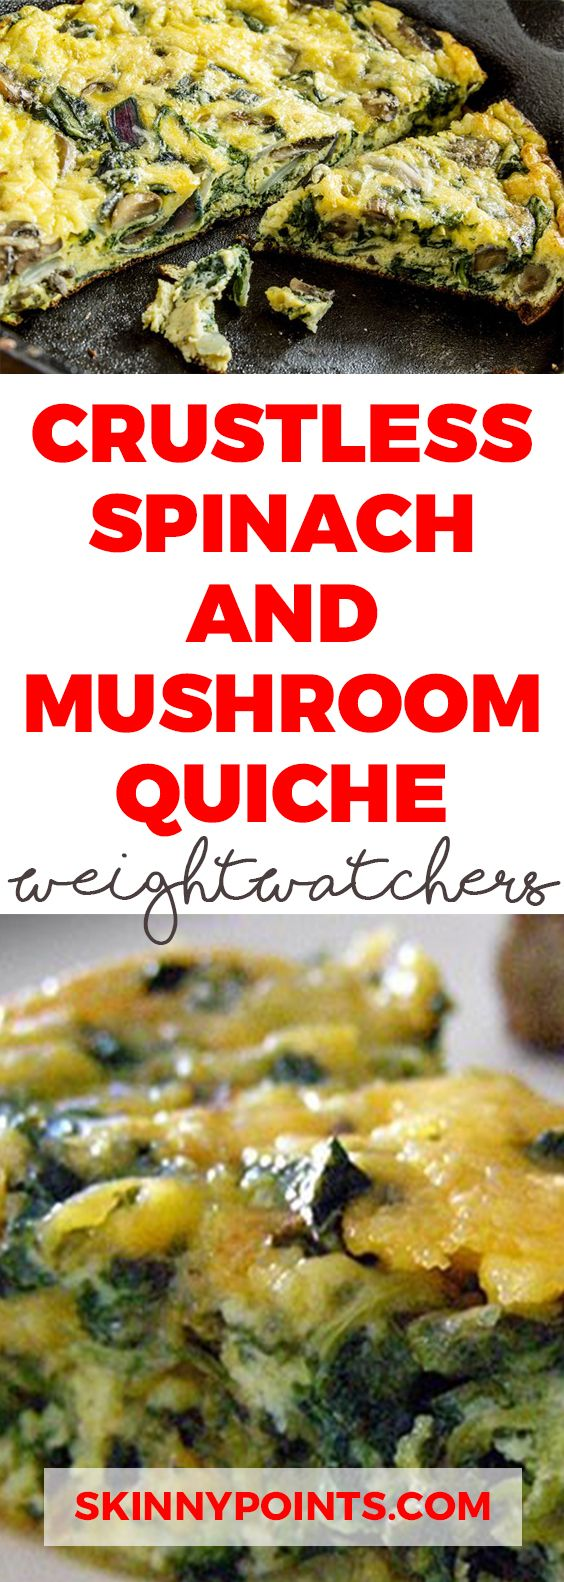 Crustless Spinach and Mushroom Quiche (Weight Watchers 3 Smartpoints)